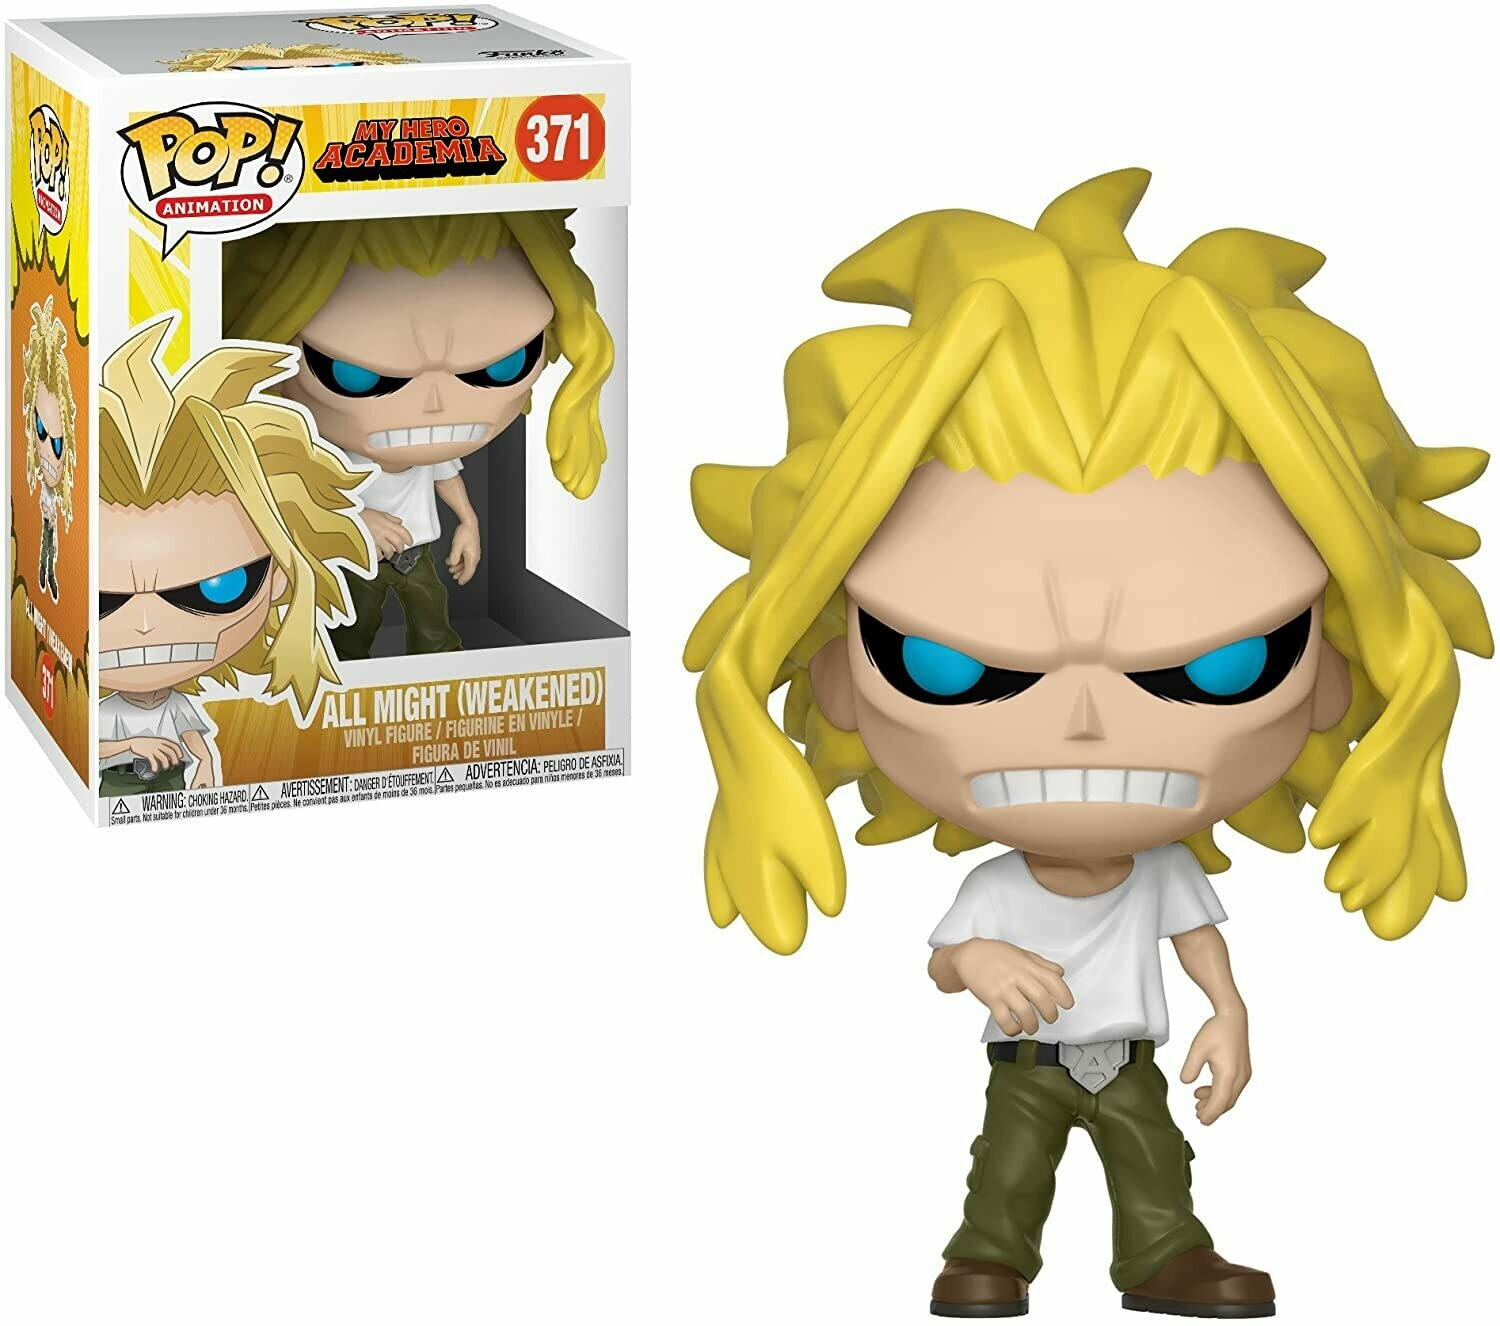 Funko Pop! All Might (Weakened) - My Hero Academia